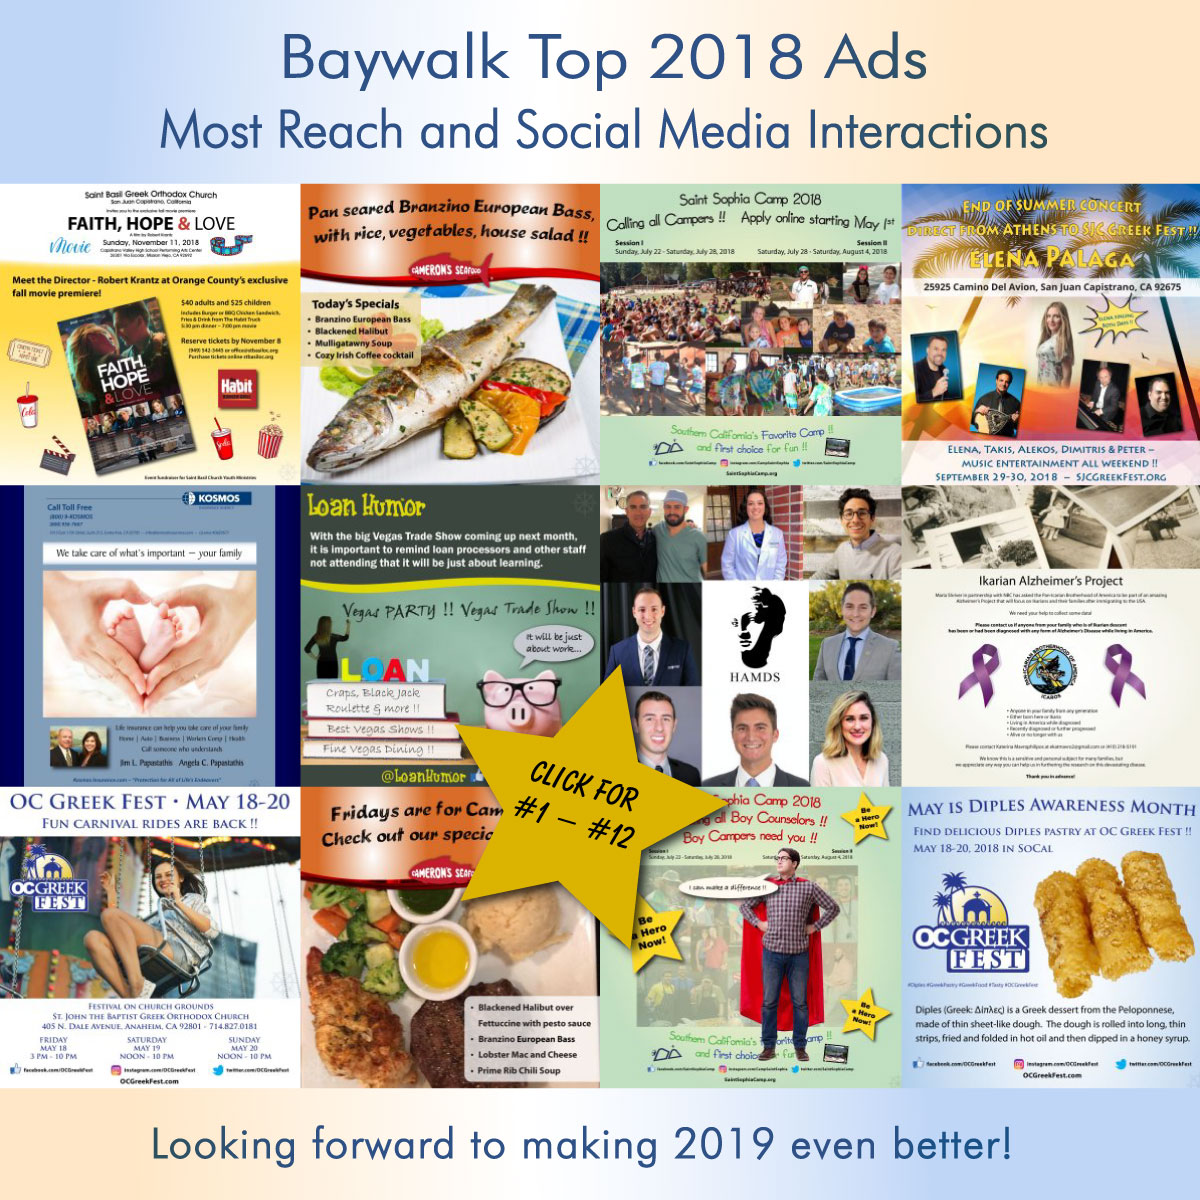 [Baywalk Marketing promotion]